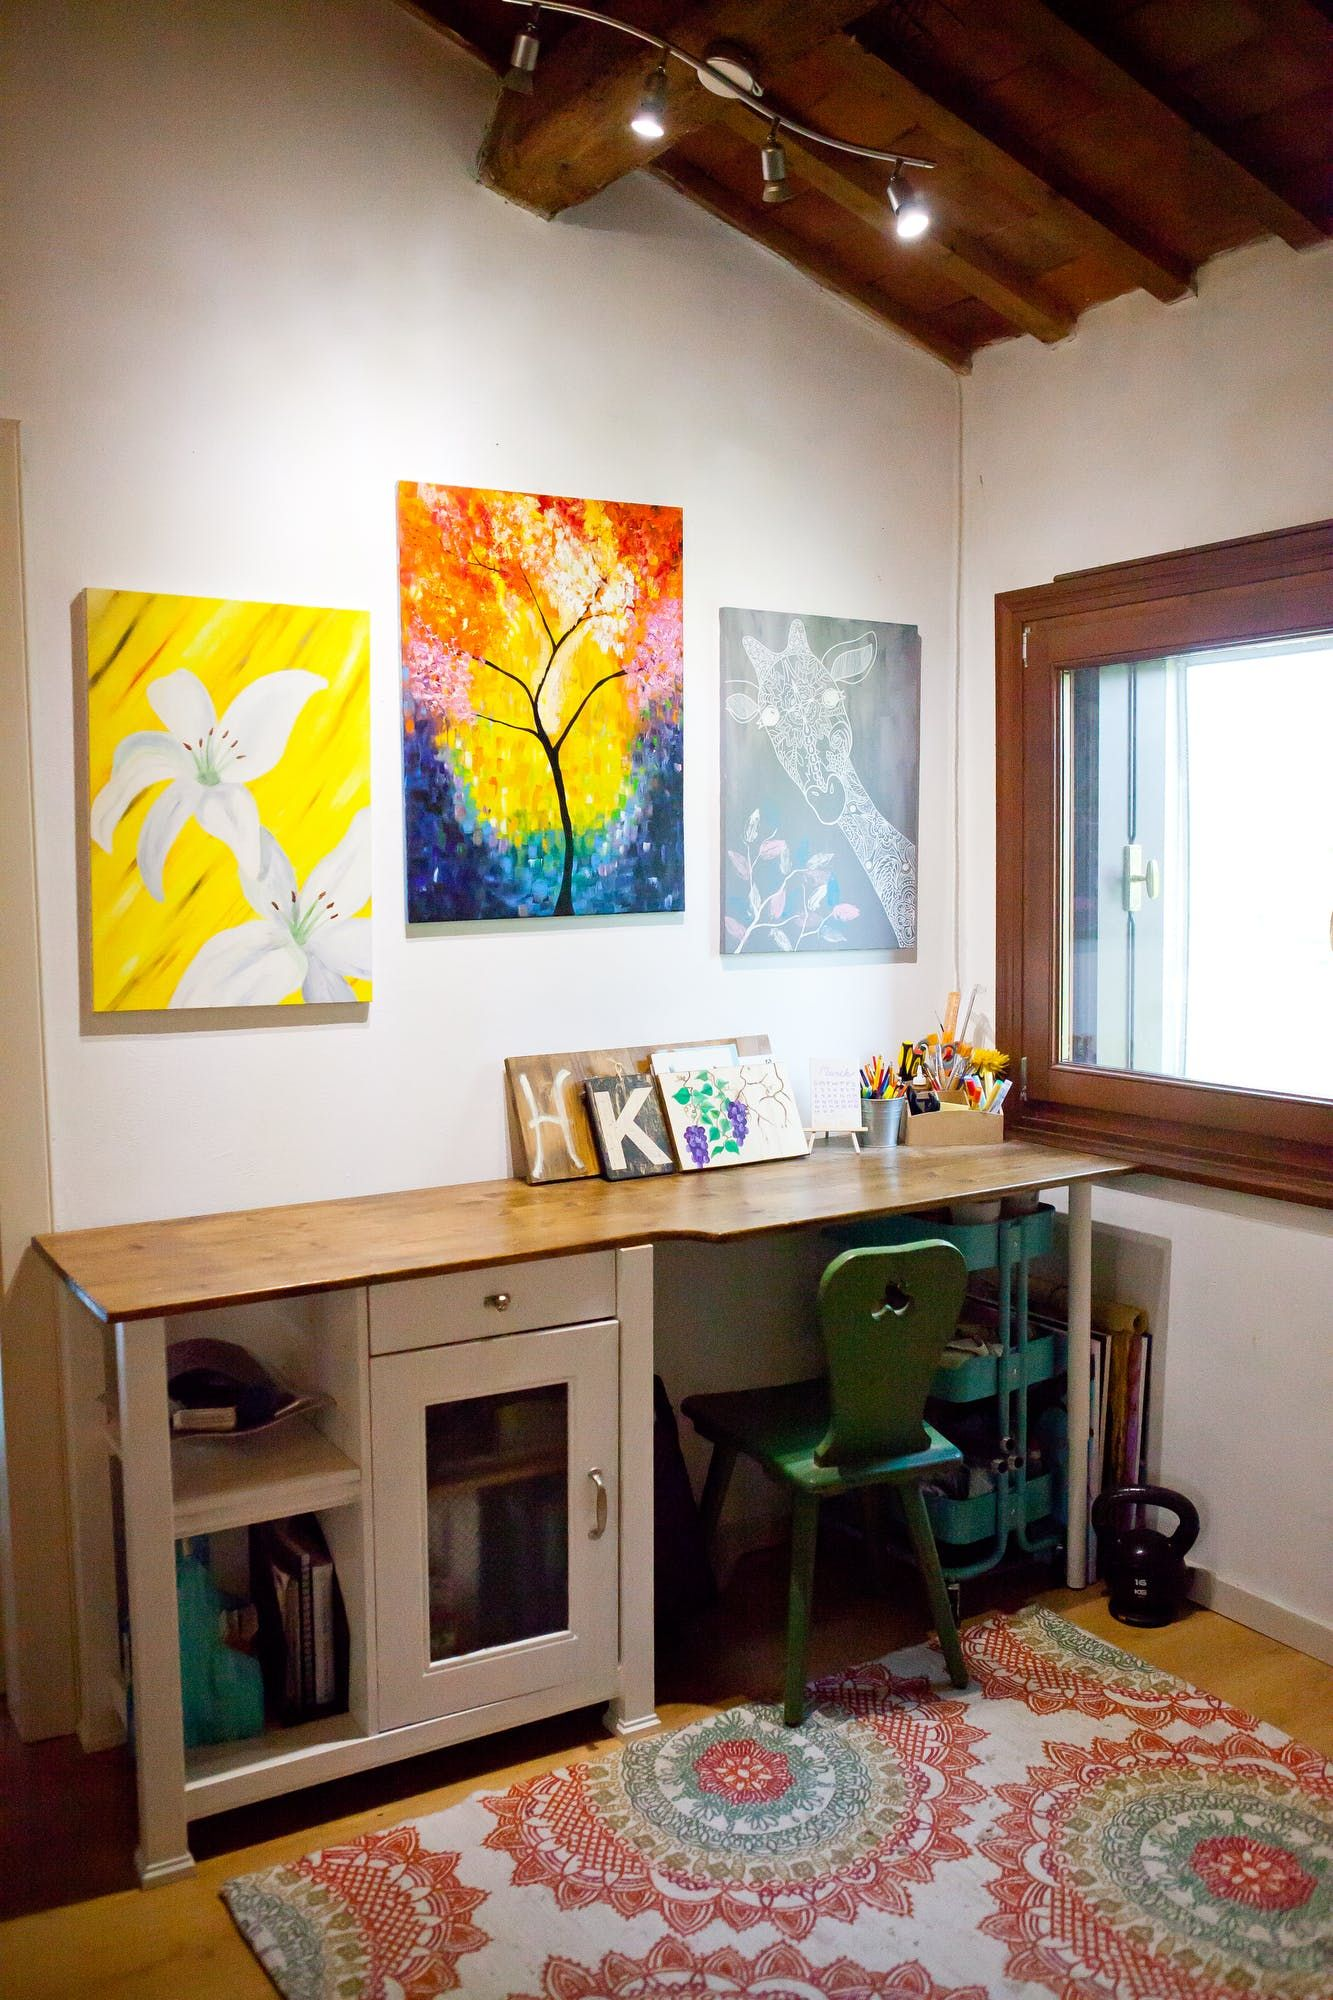 Kates workspace is set up in their upstairs living room area with plenty of natural light and diyd art of course whats a work space without a råskog